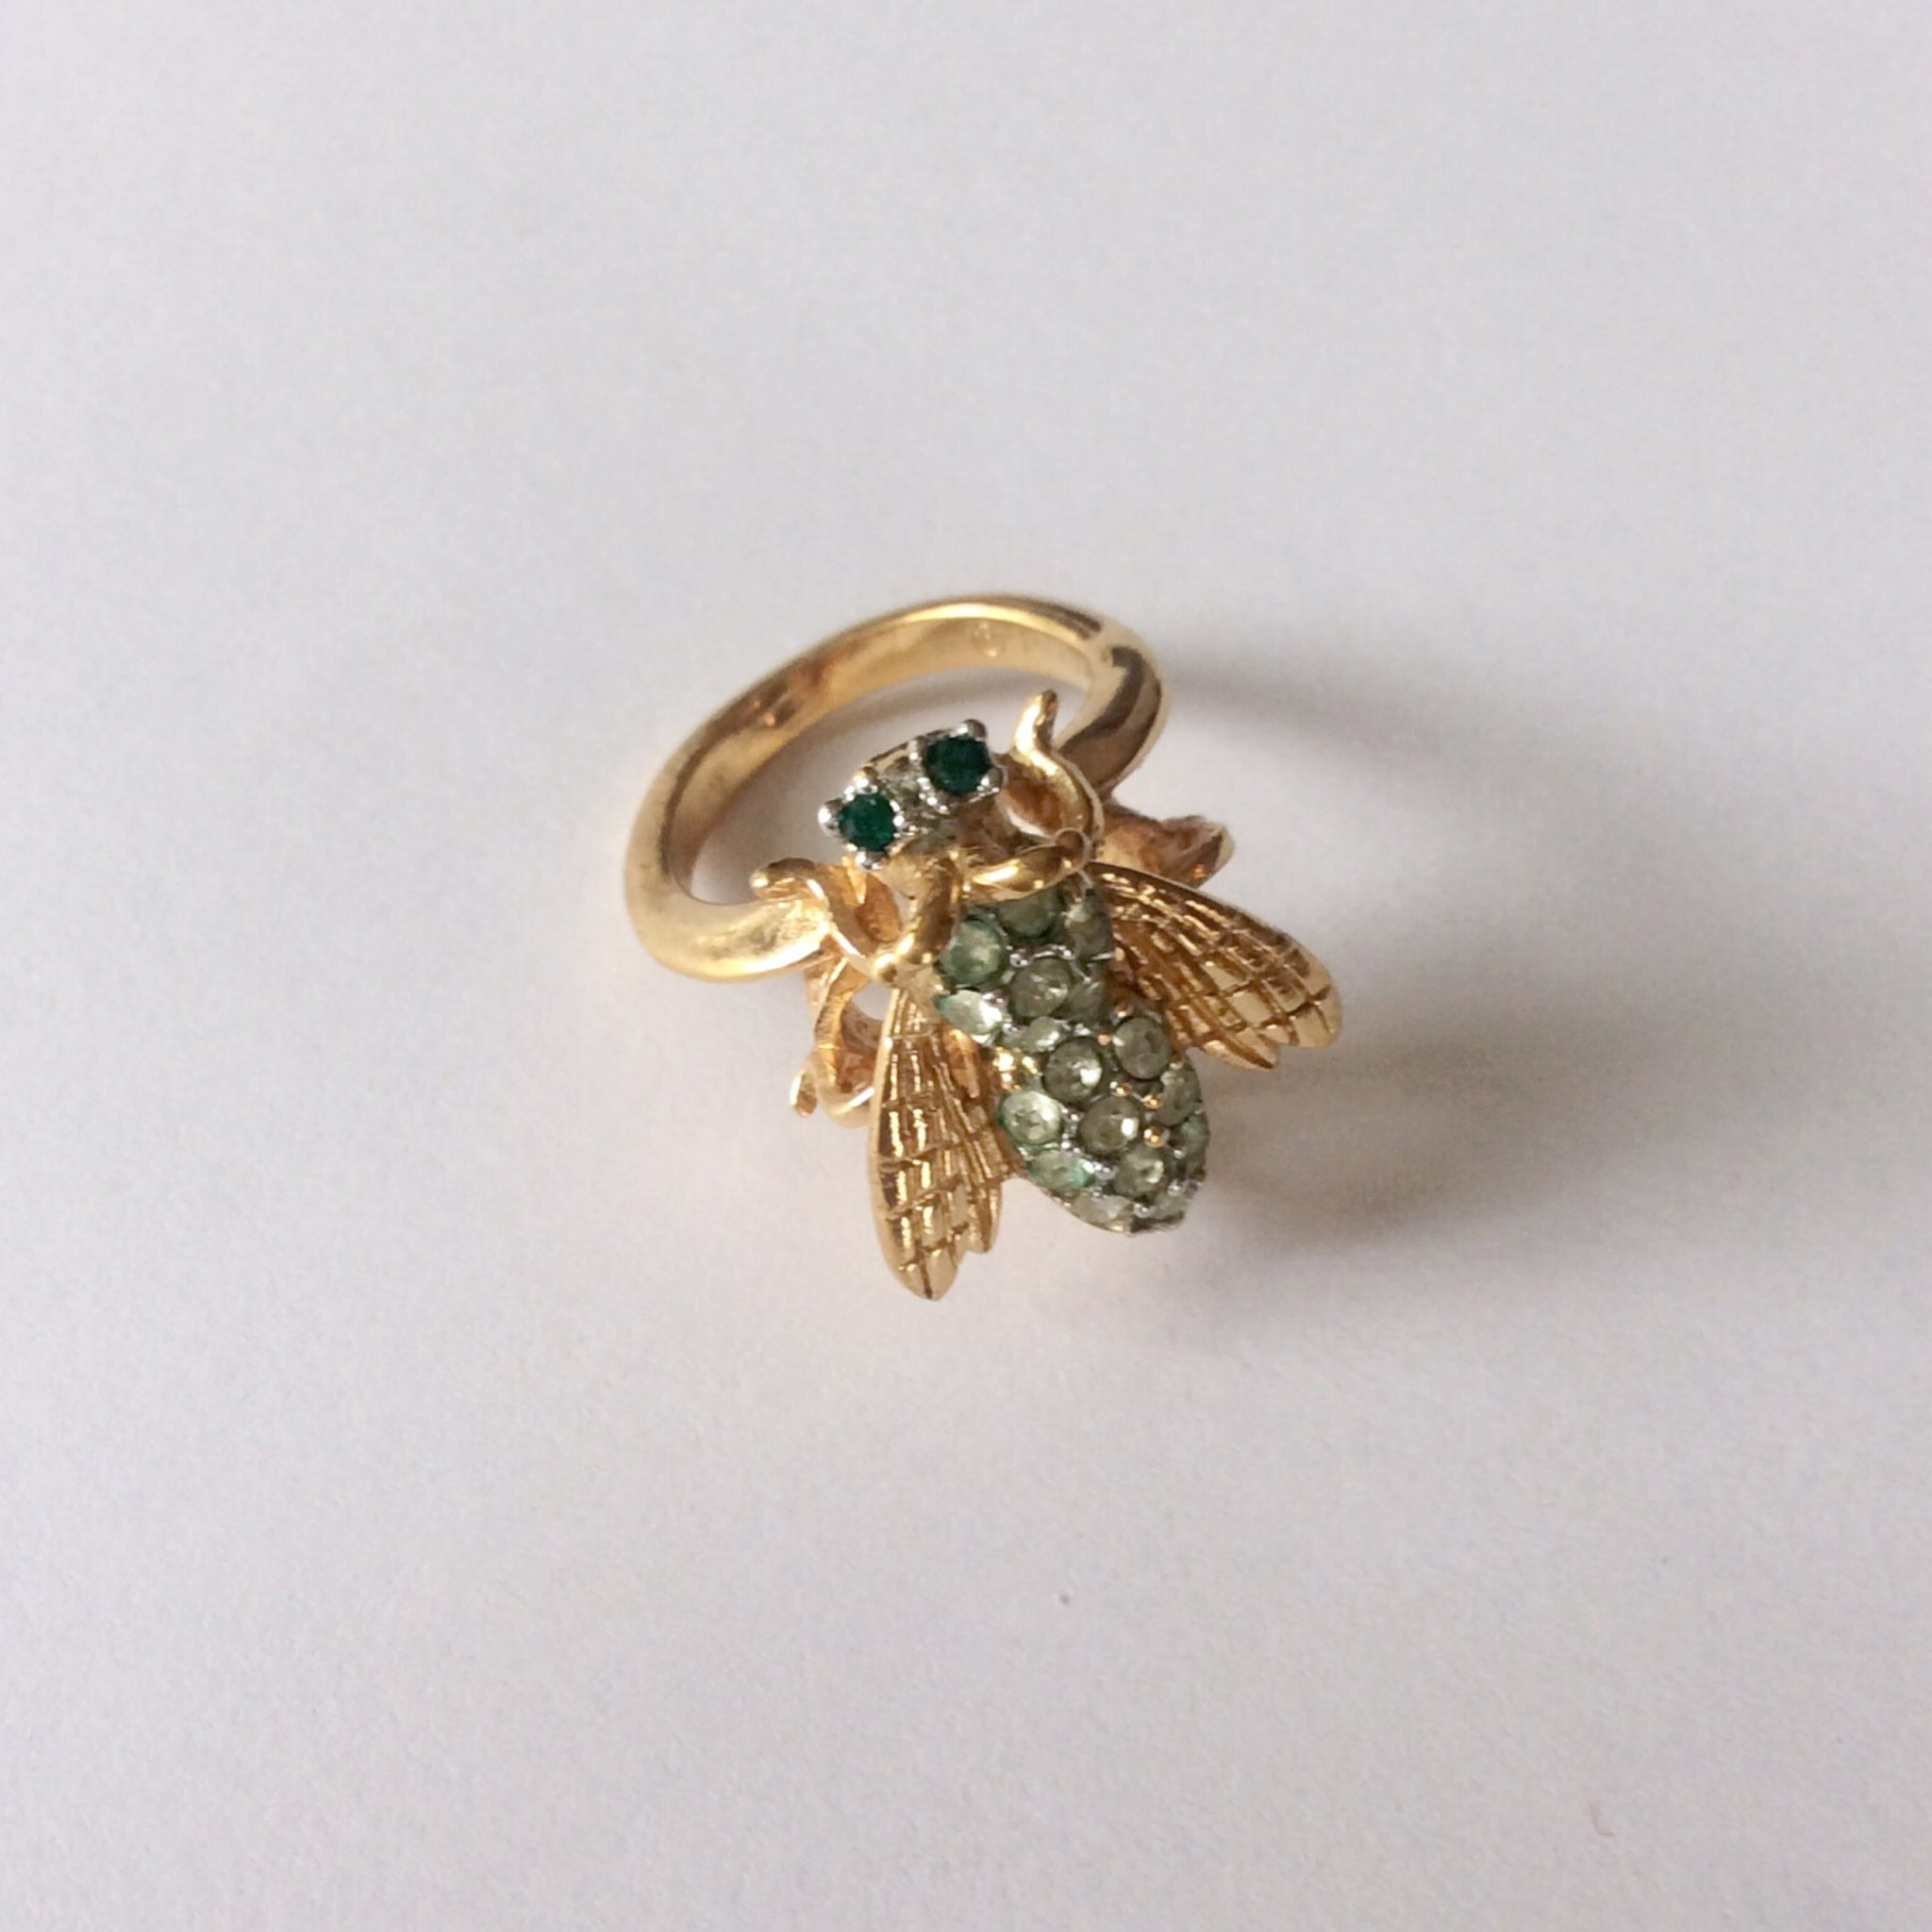 Vintage Rhinestone Bee Ring